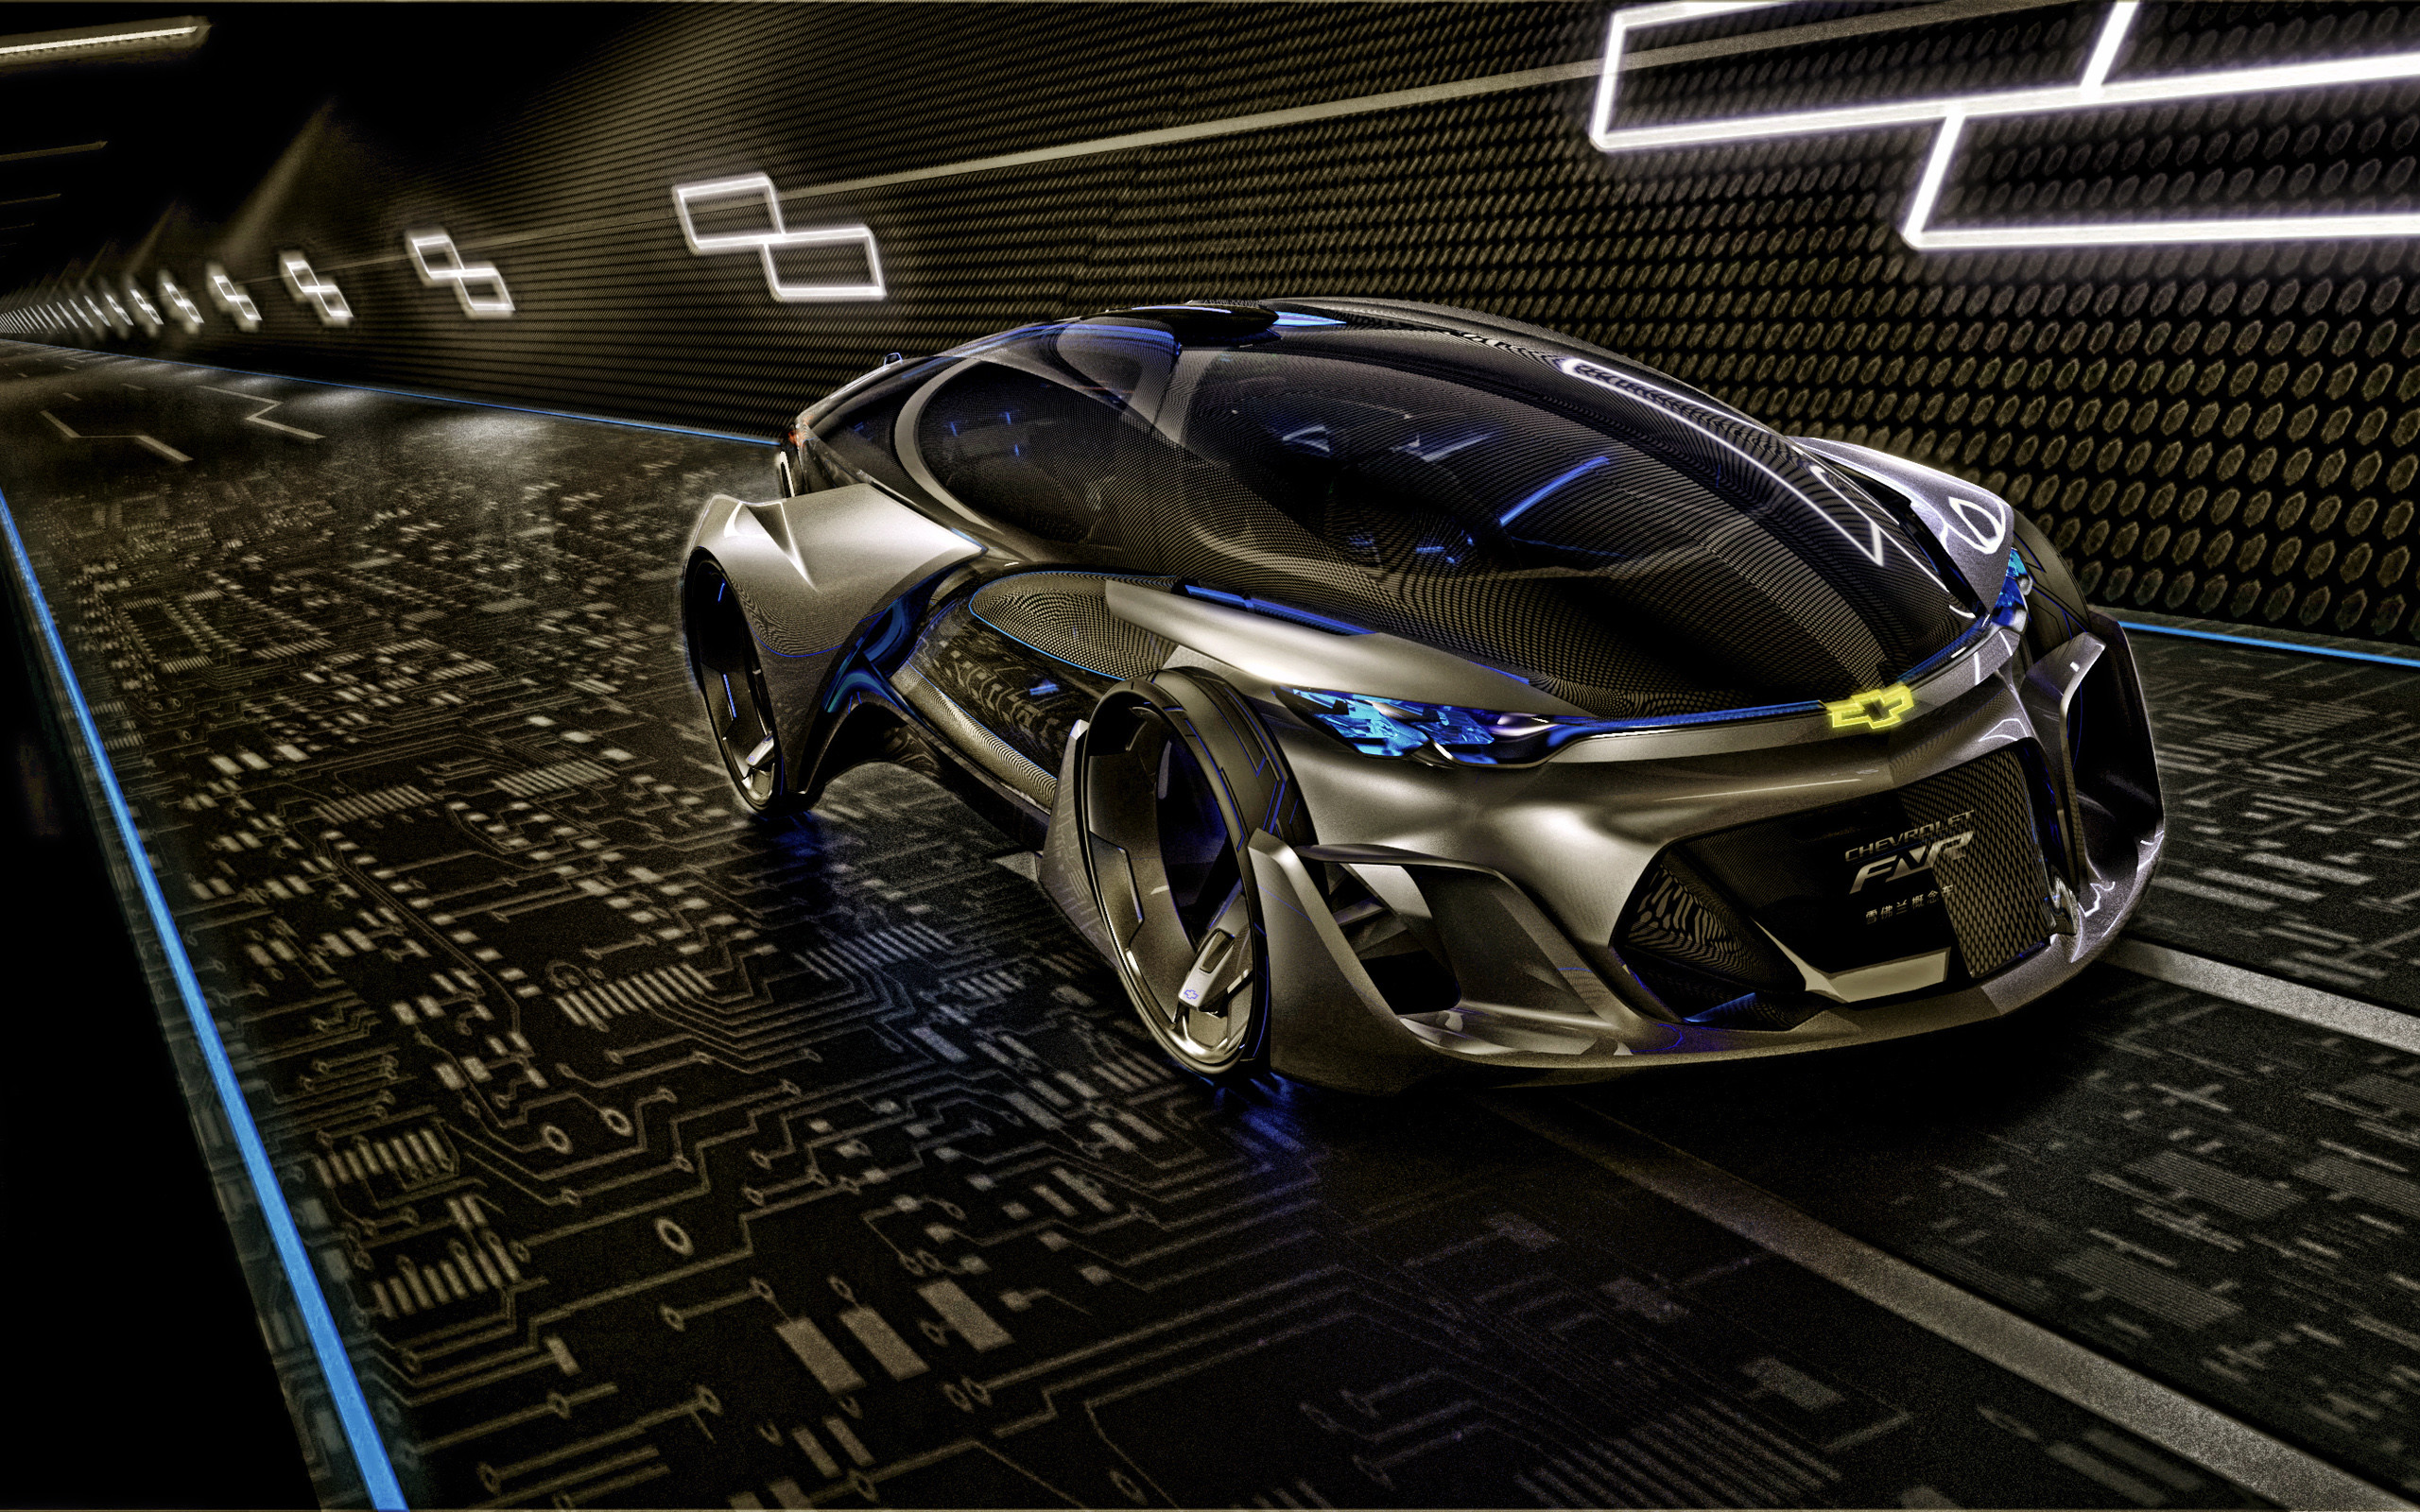 Res: 2560x1600, 2015 Chevrolet FNR Concept Wallpaper